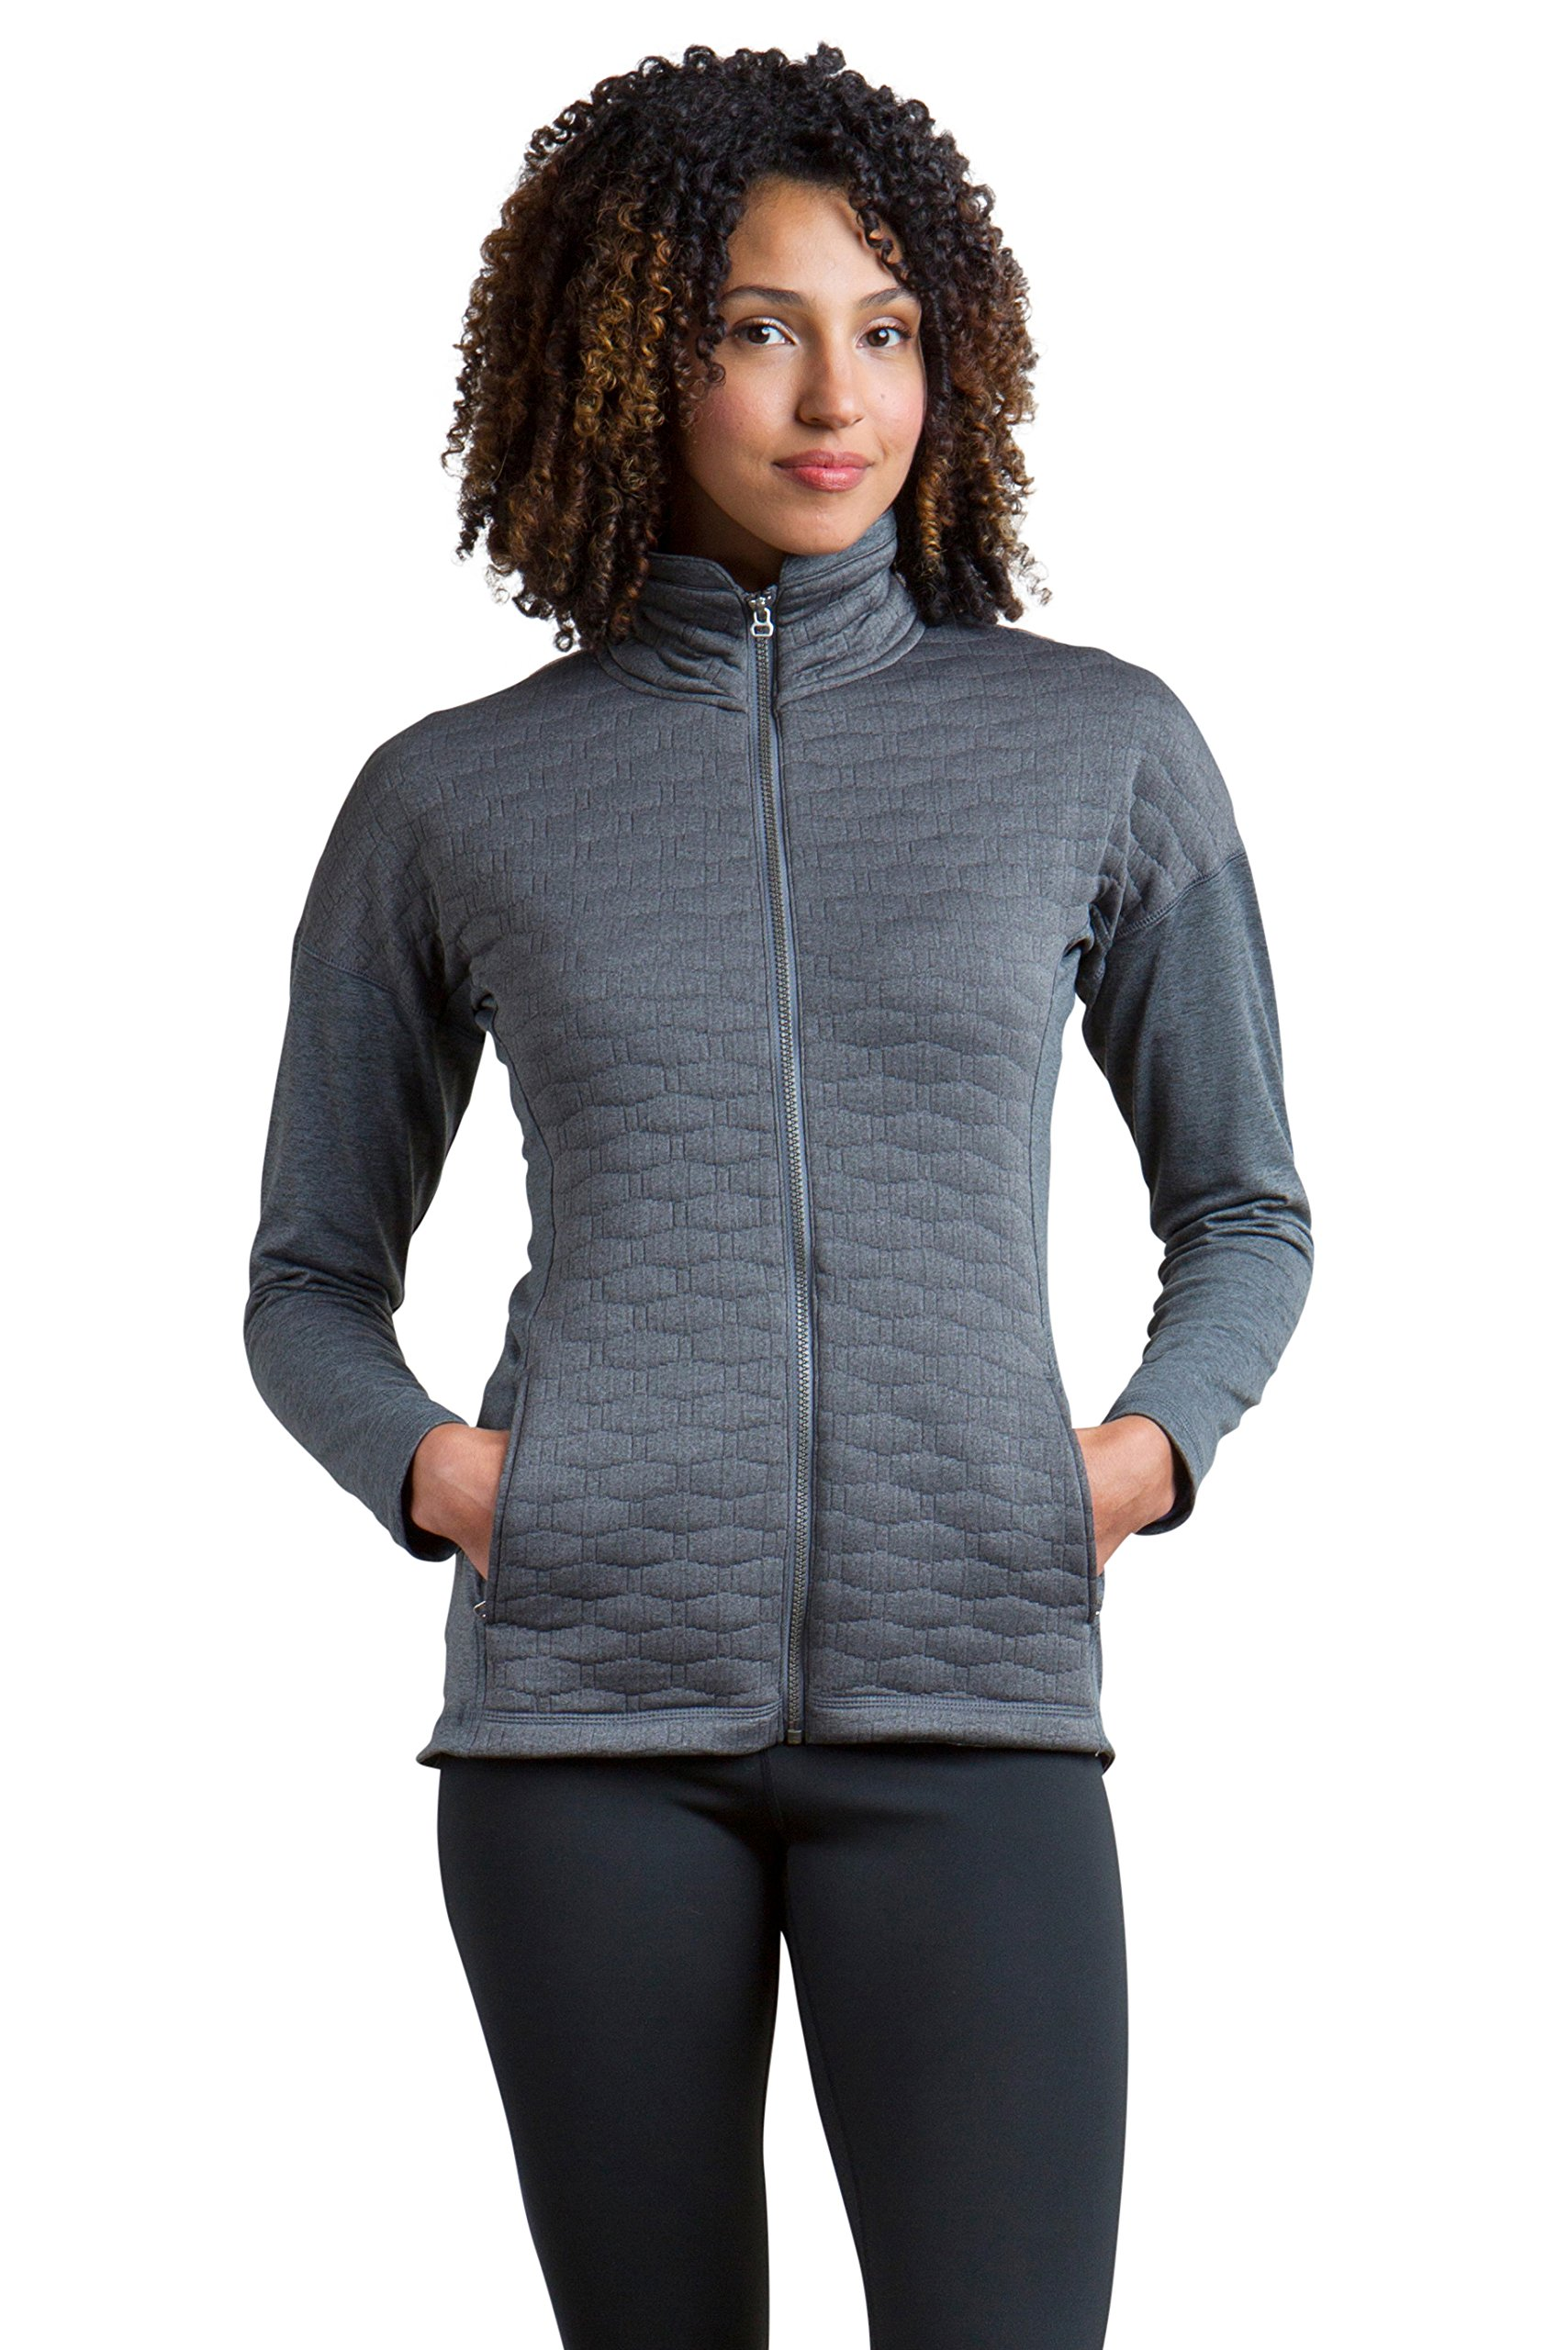 ExOfficio Women's Kelowna Full Zip, Grey Heather, Medium by ExOfficio